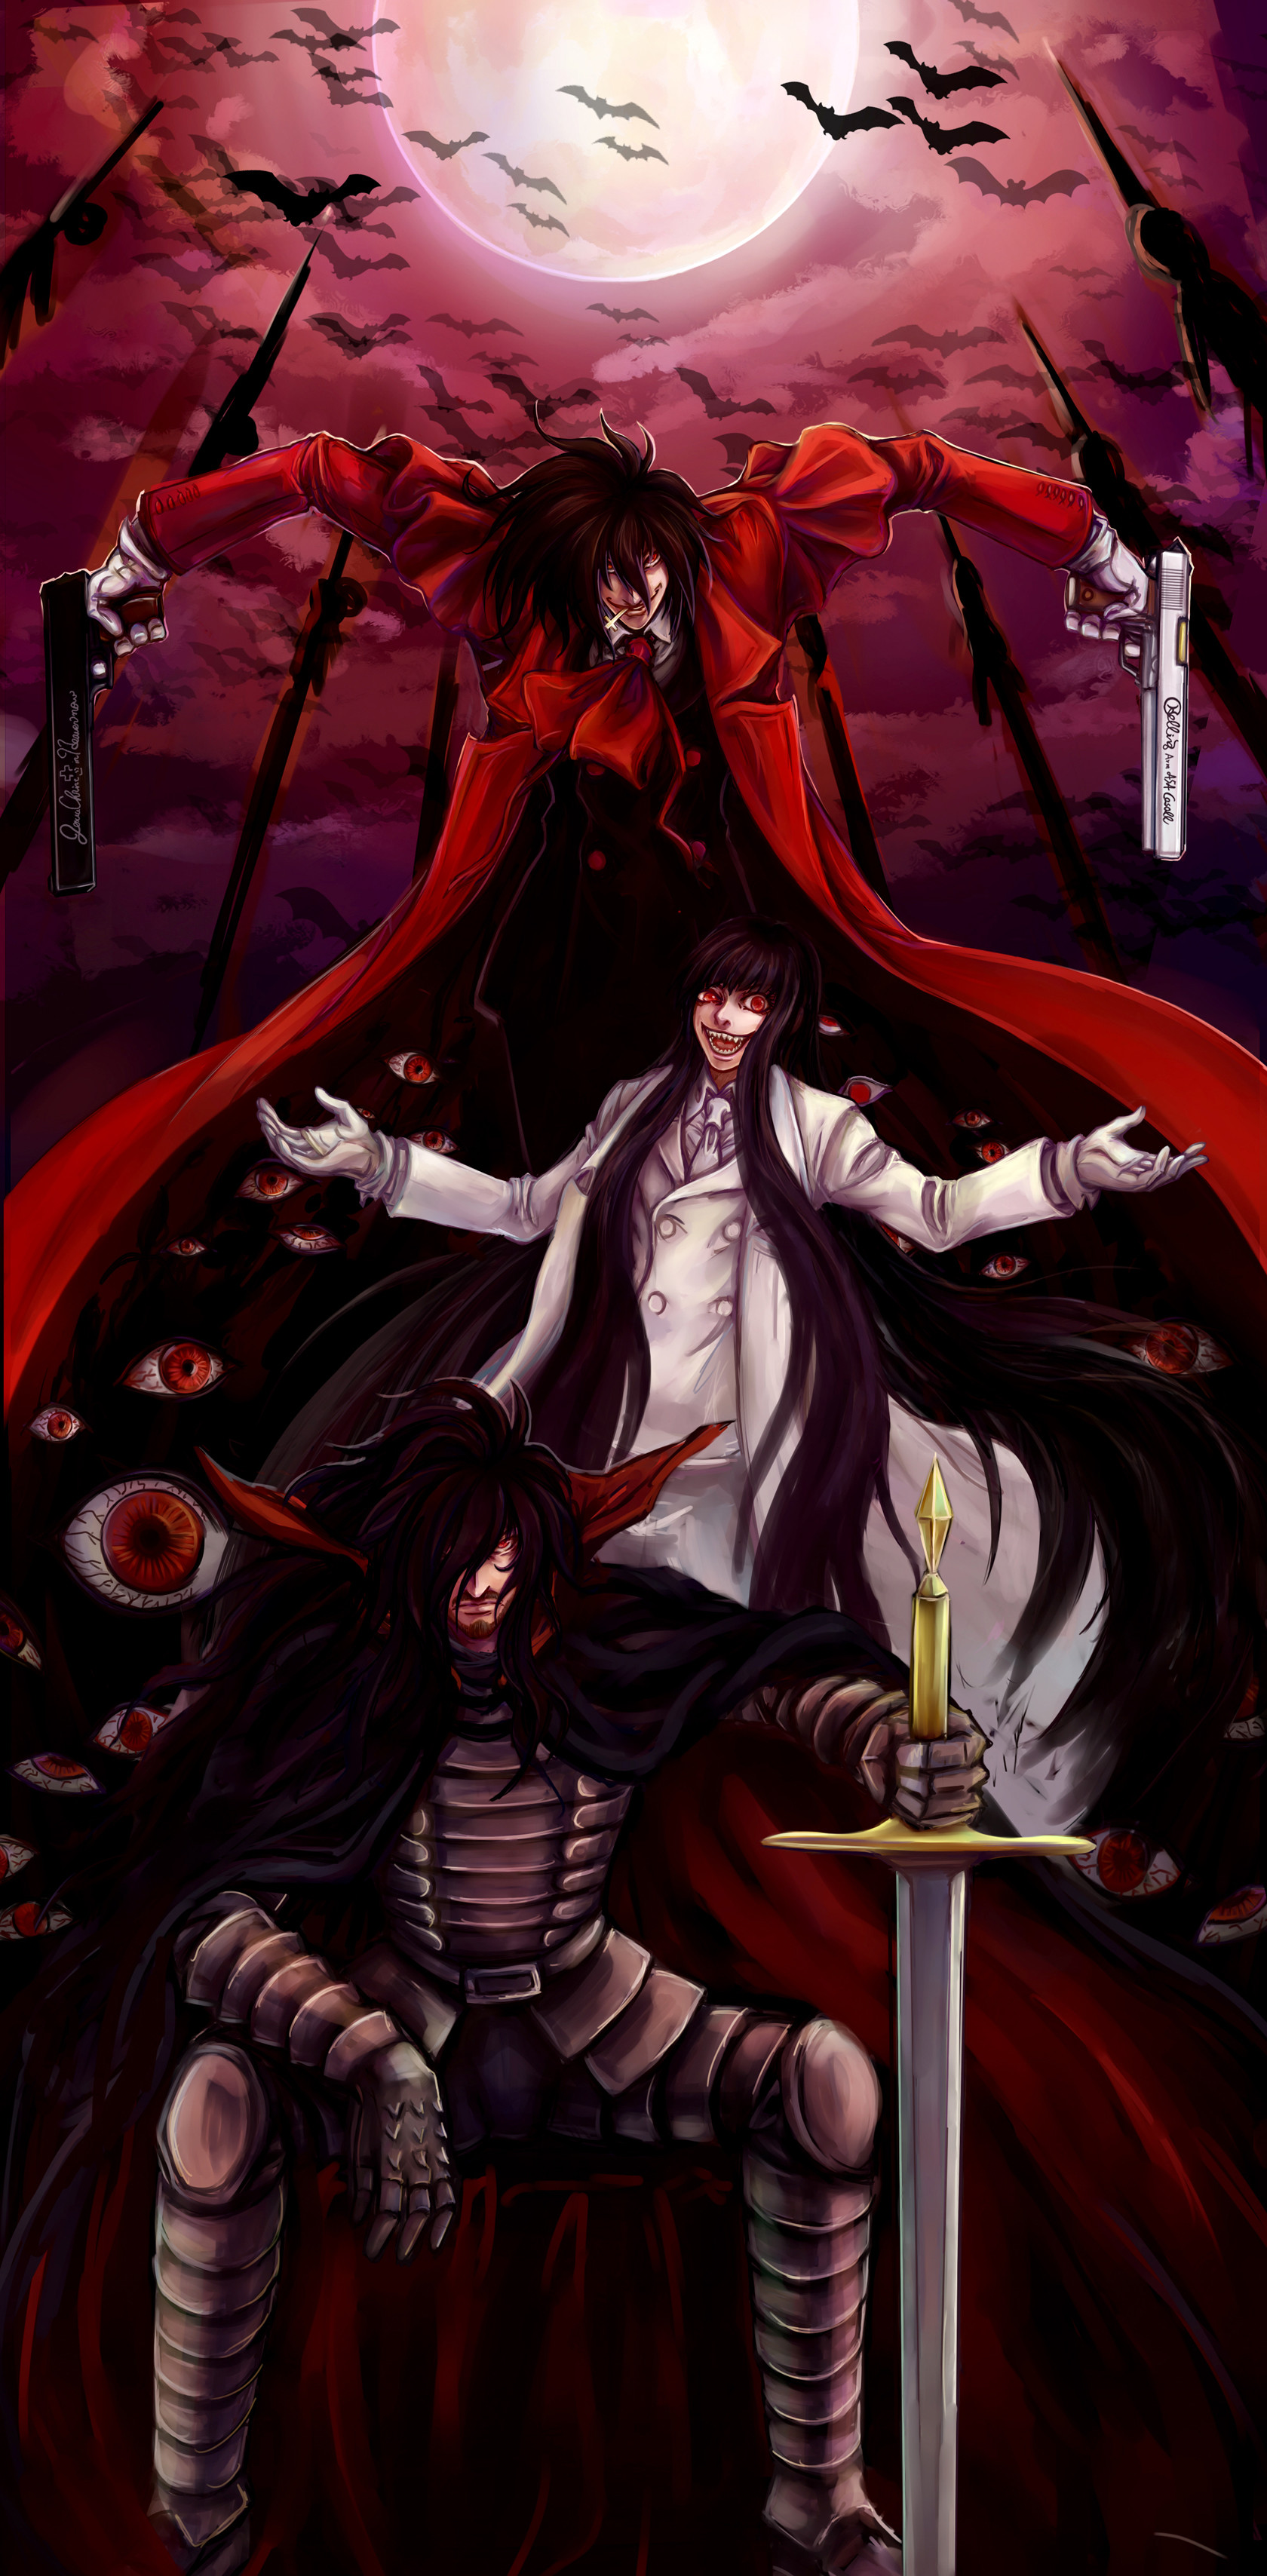 Hellsing ultimate wallpaper 58 images - Anime hellsing wallpaper ...